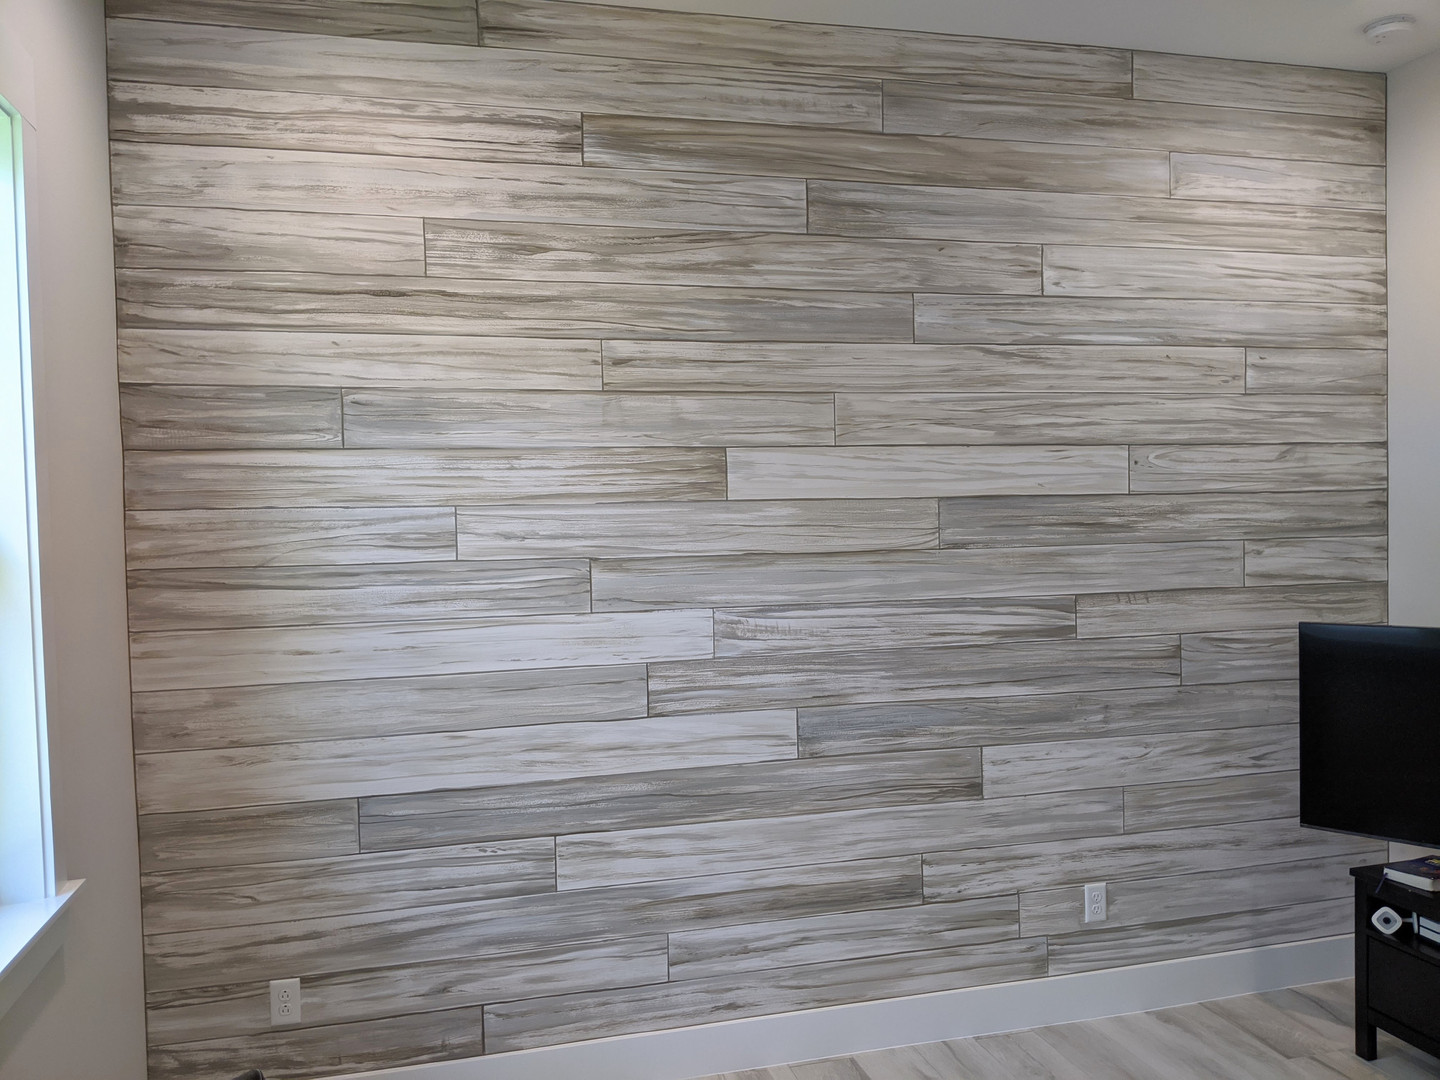 Painted plank wall